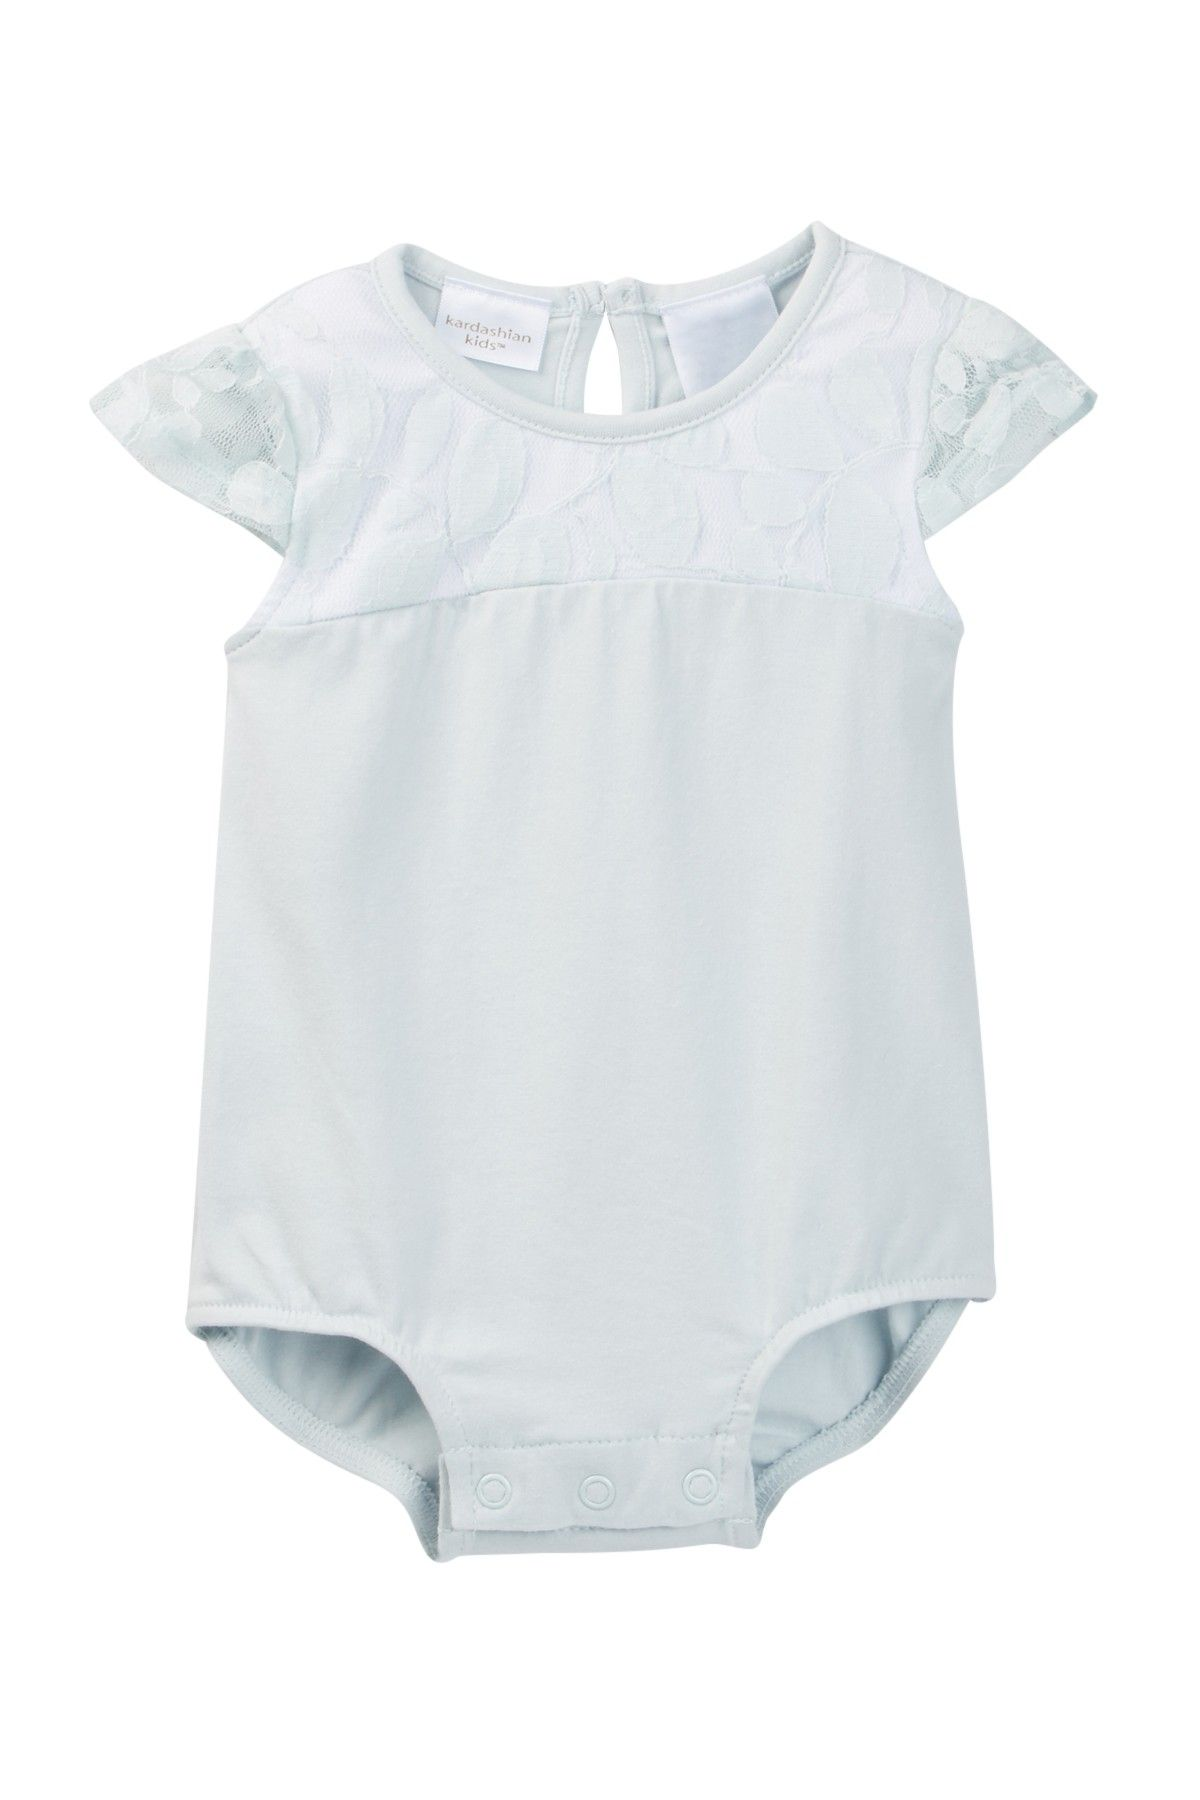 Kardashian Kids Lace Bodysuit Baby Girls 12 24M at Nordstrom